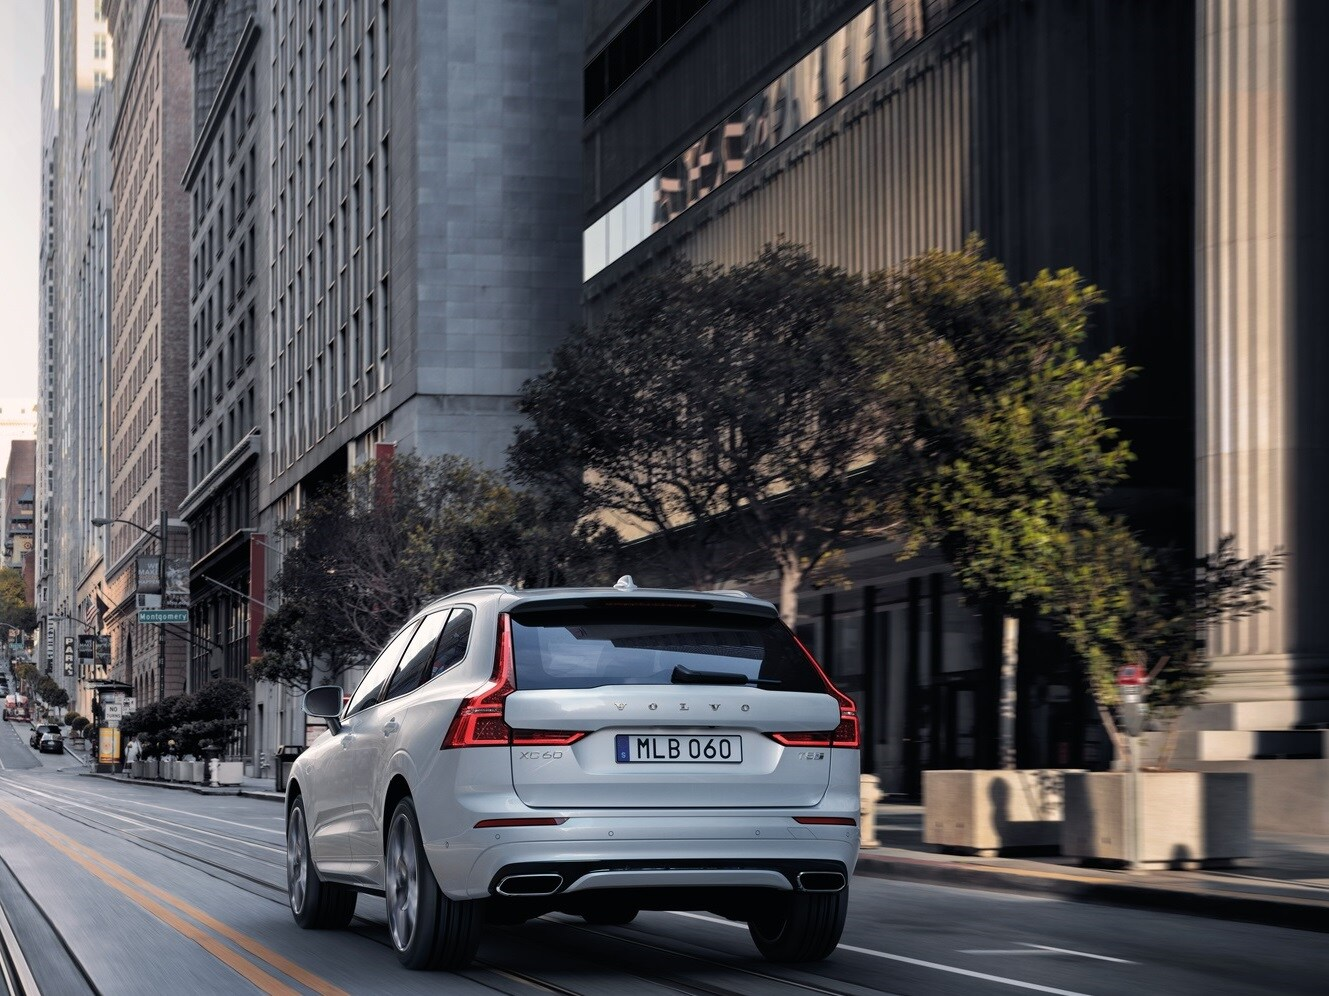 Design exterior do XC60, SUV da Volvo Cars, na cor Crystal White.